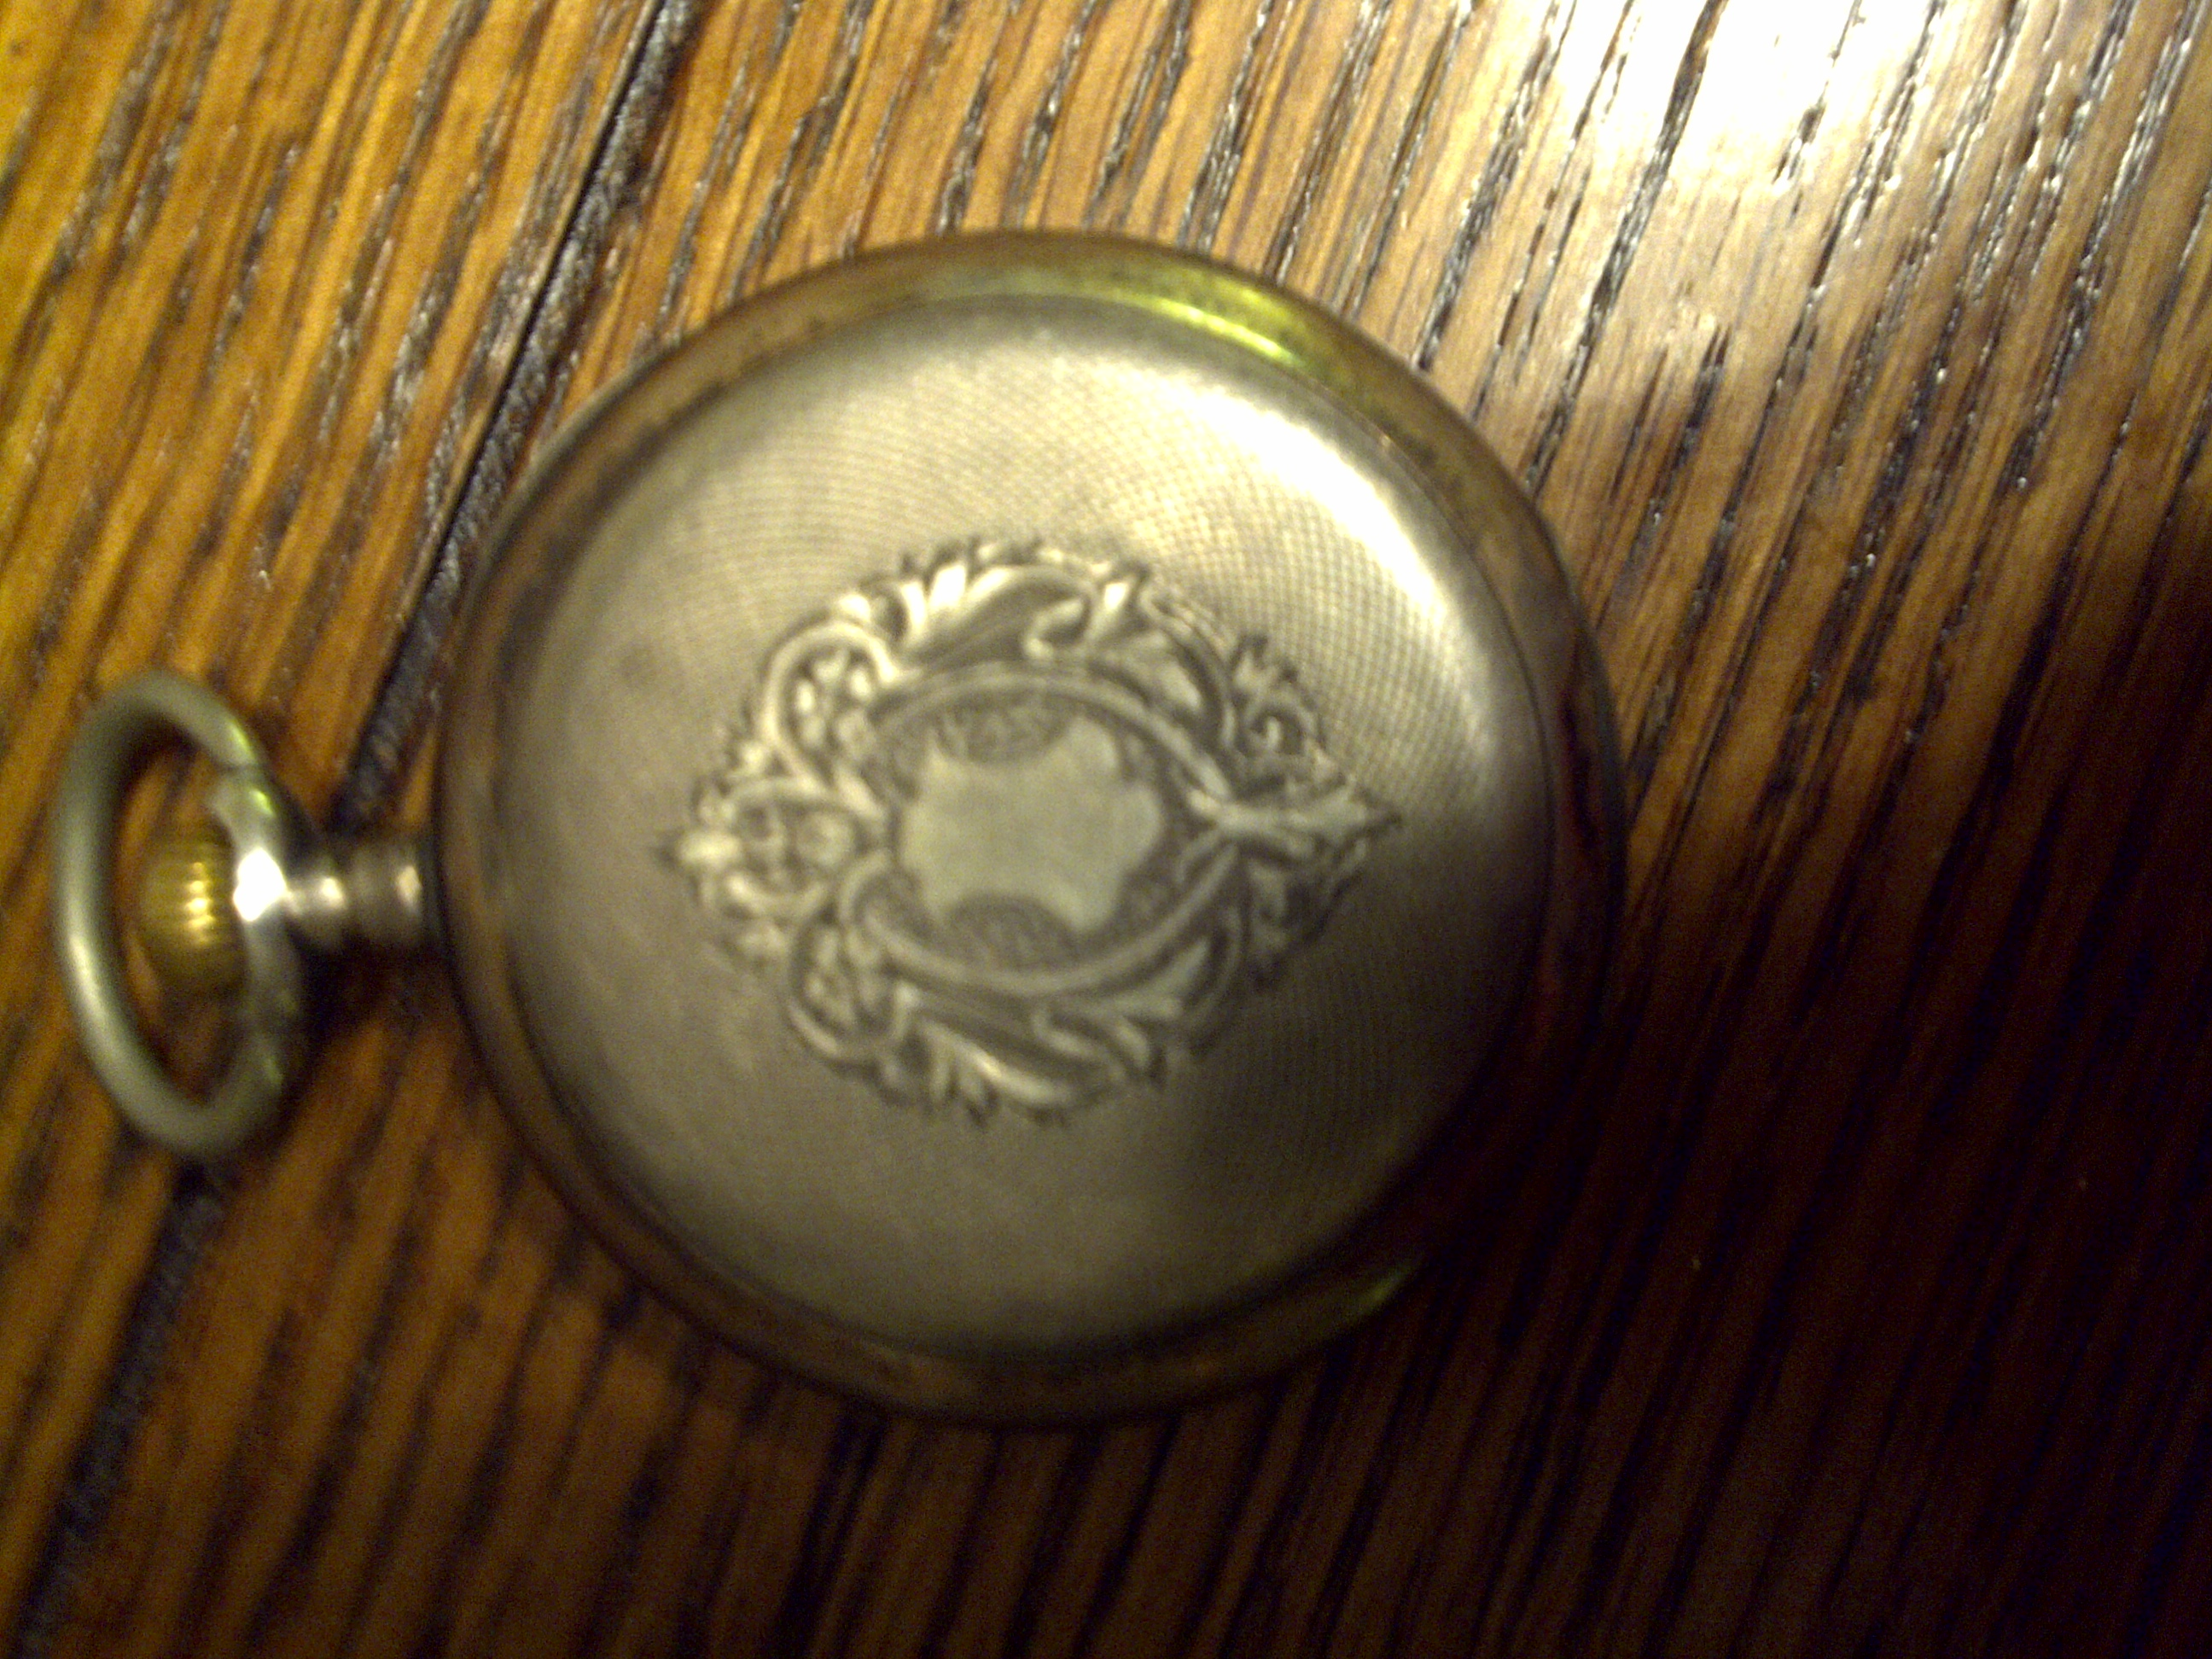 Antique Pocket Watch Value